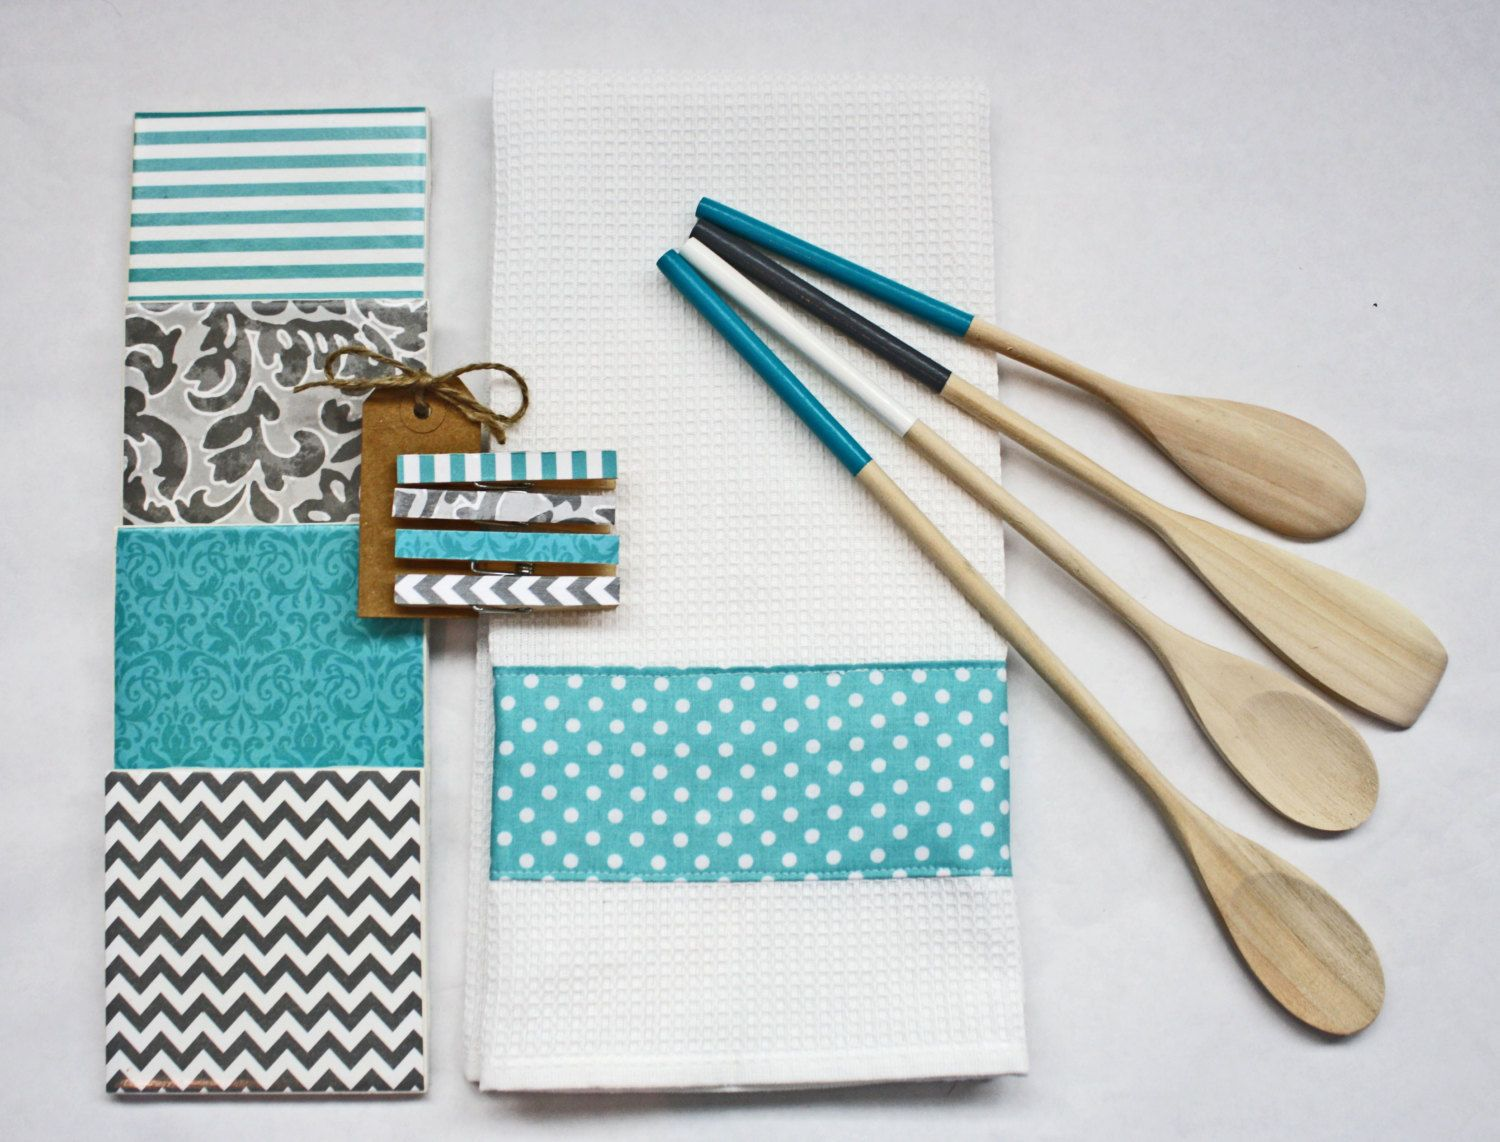 Handmade kitchen gift set Teal and Gray Chevron by PippensKitchen ...